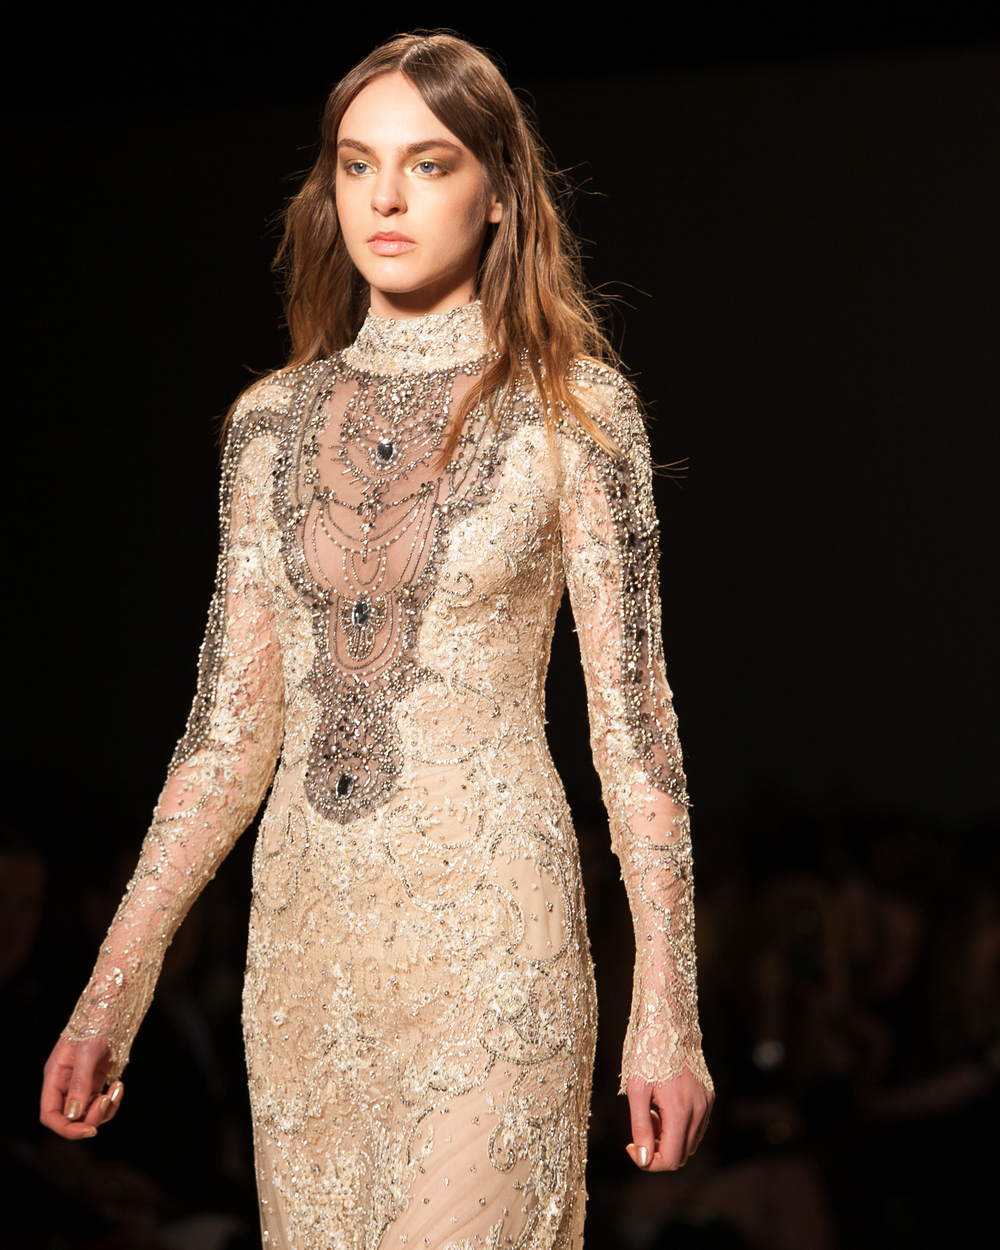 018-Reem-Acra-New-York-Fashion-Week-Fall-Winter-2015-Shana-Schnur-Photography-018.jpg